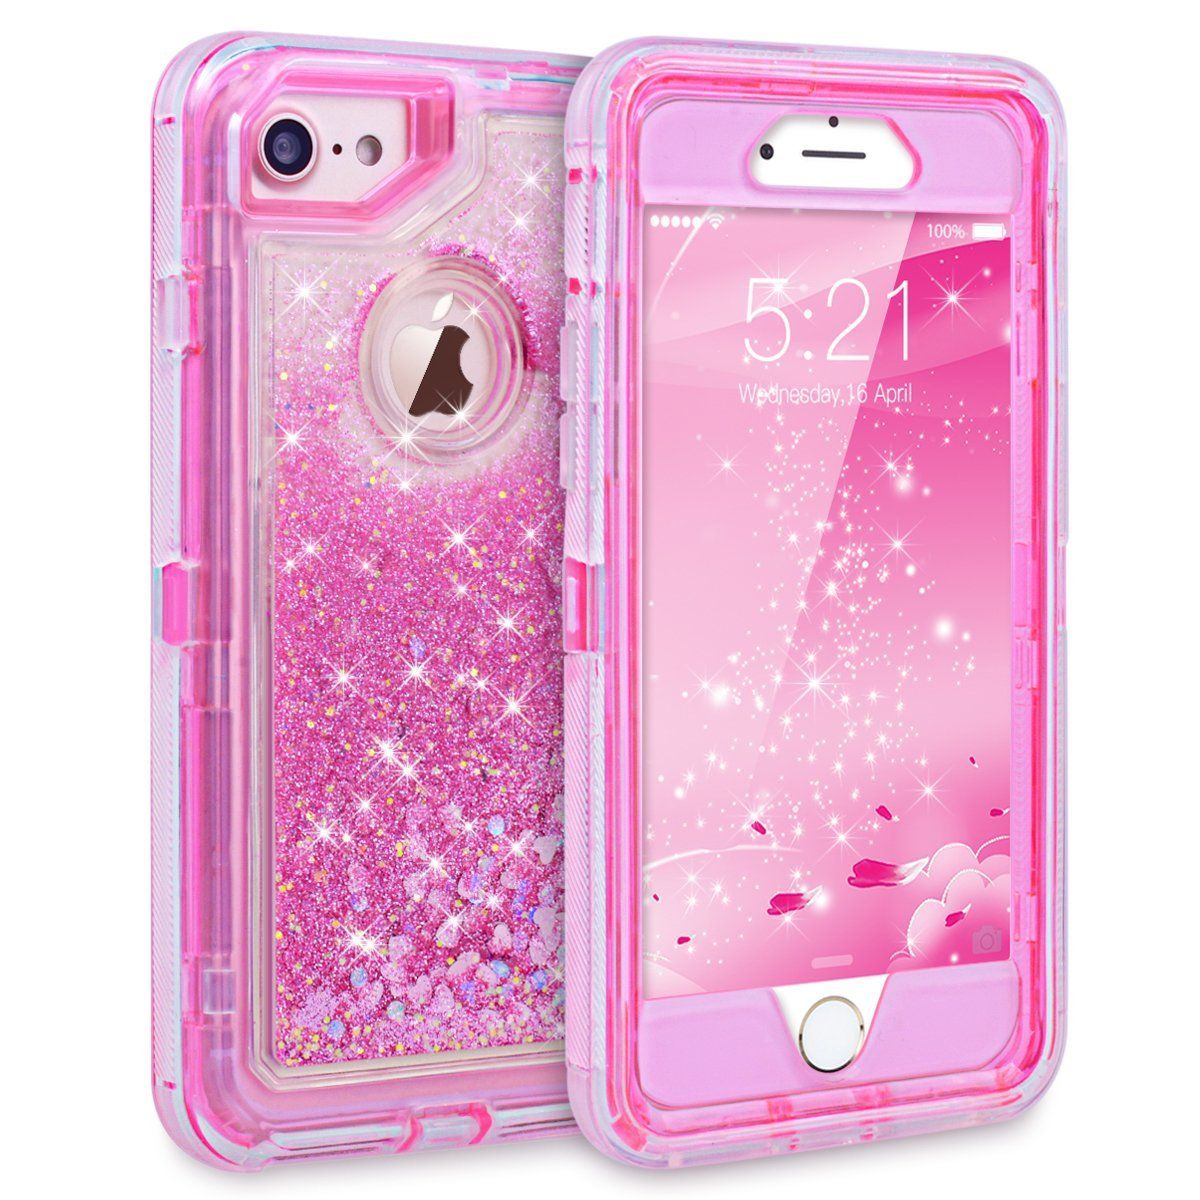 Pin by ken tom on lllllllll in 2021 glitter iphone 6s